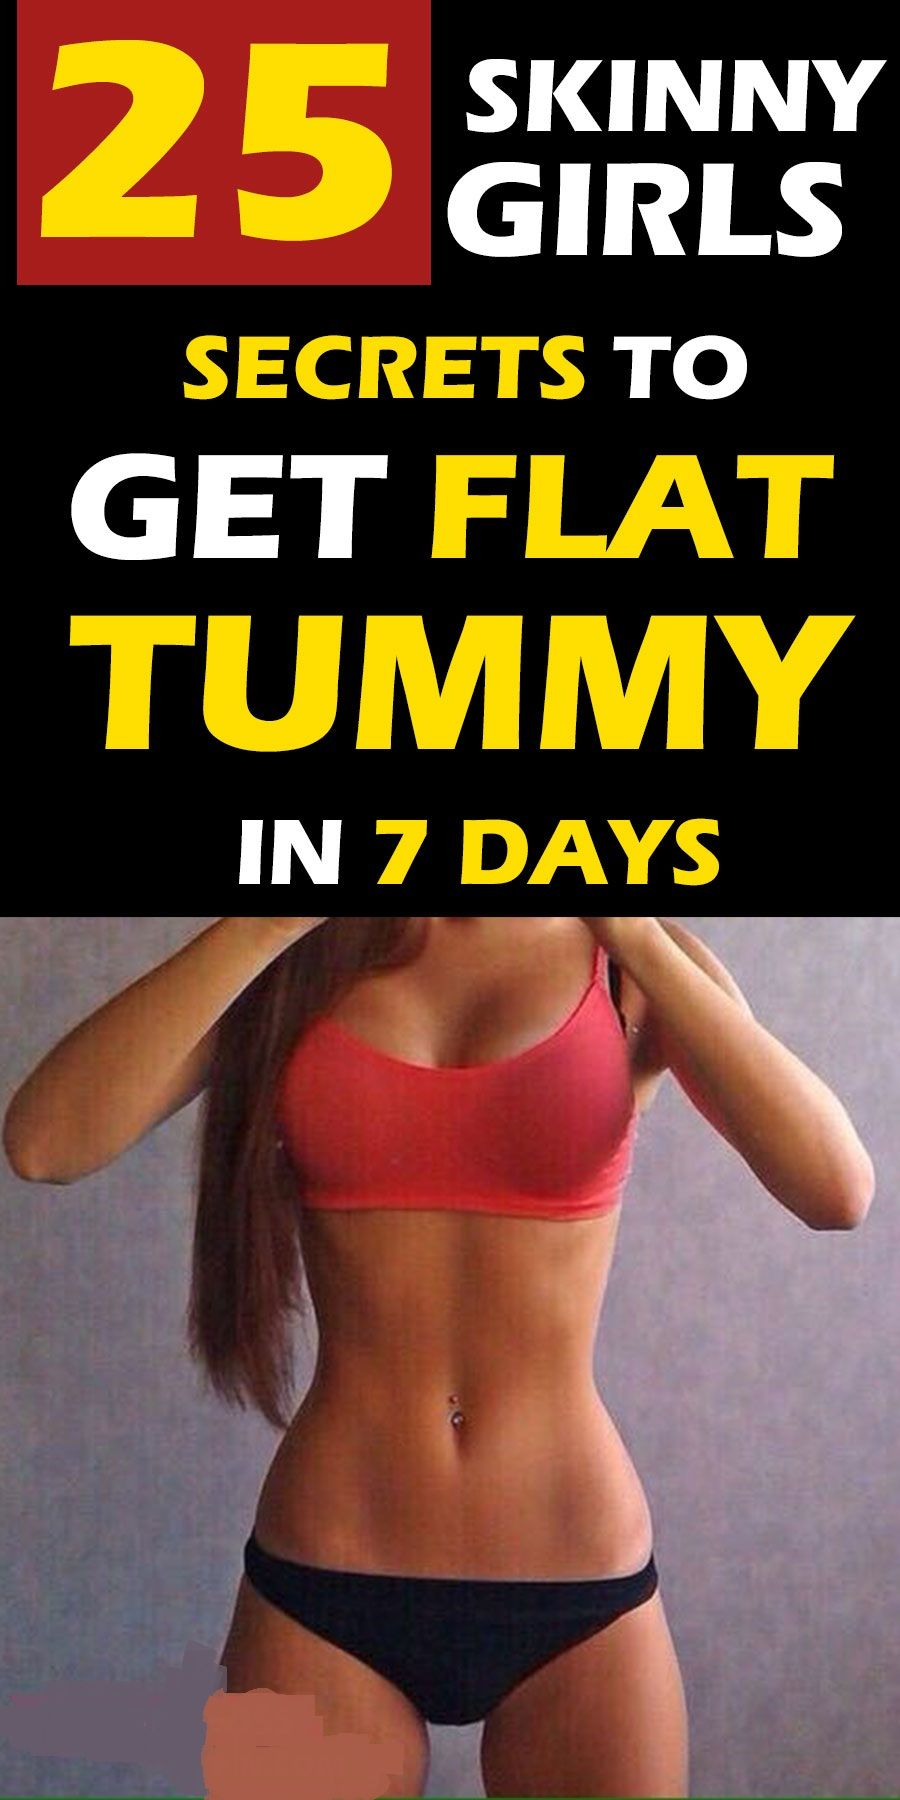 Pin on healthy weight loss tips